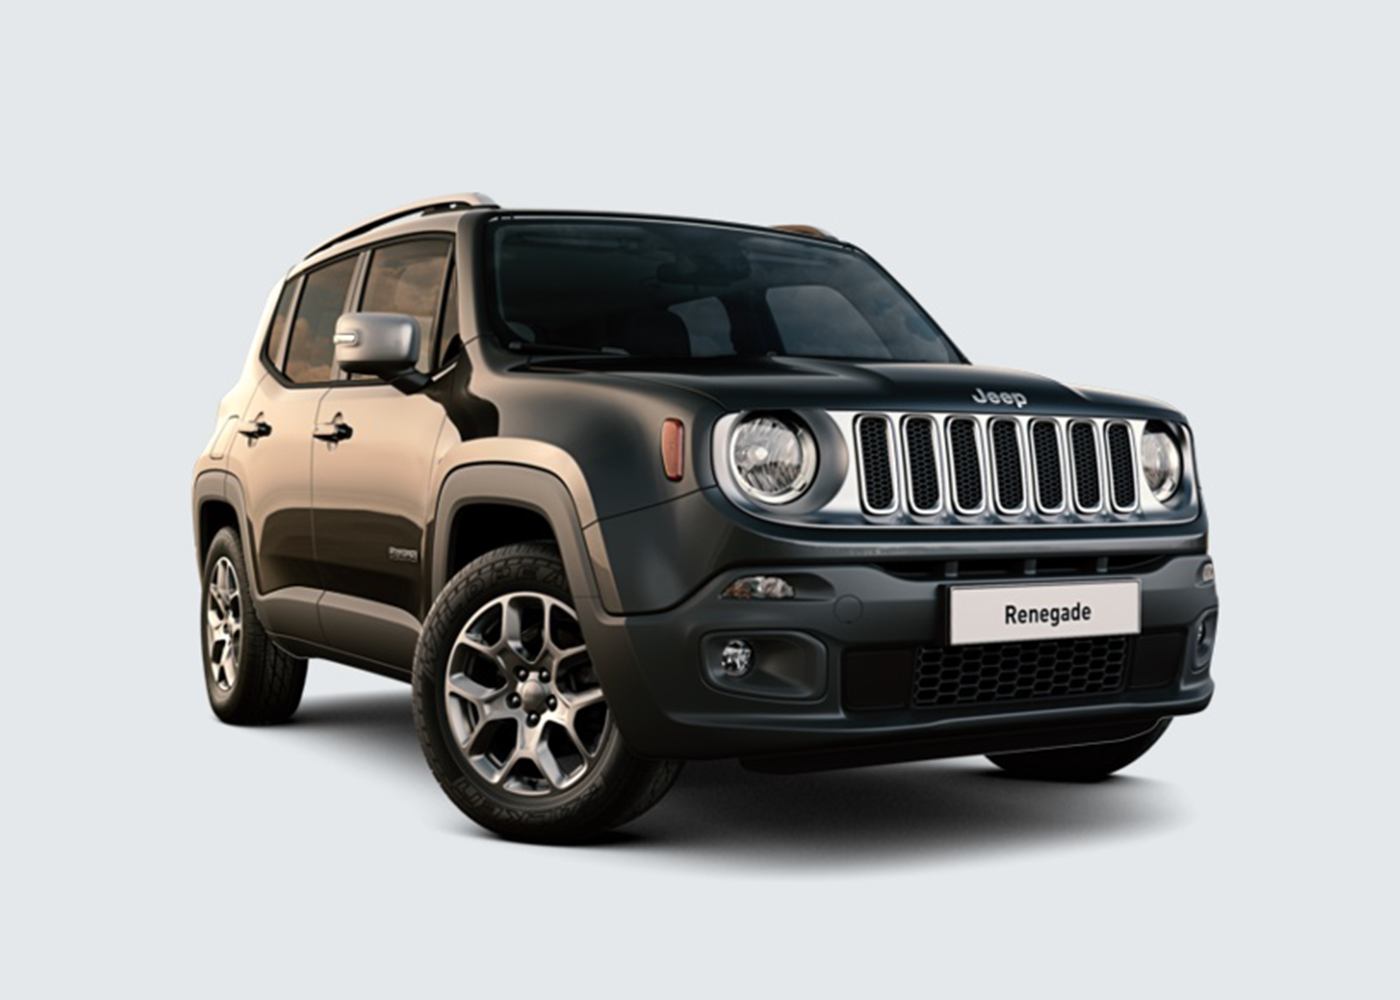 jeep renegade 2 0 mjt 140cv 4wd active drive low limited carbon black km0 a soli 28120 su. Black Bedroom Furniture Sets. Home Design Ideas